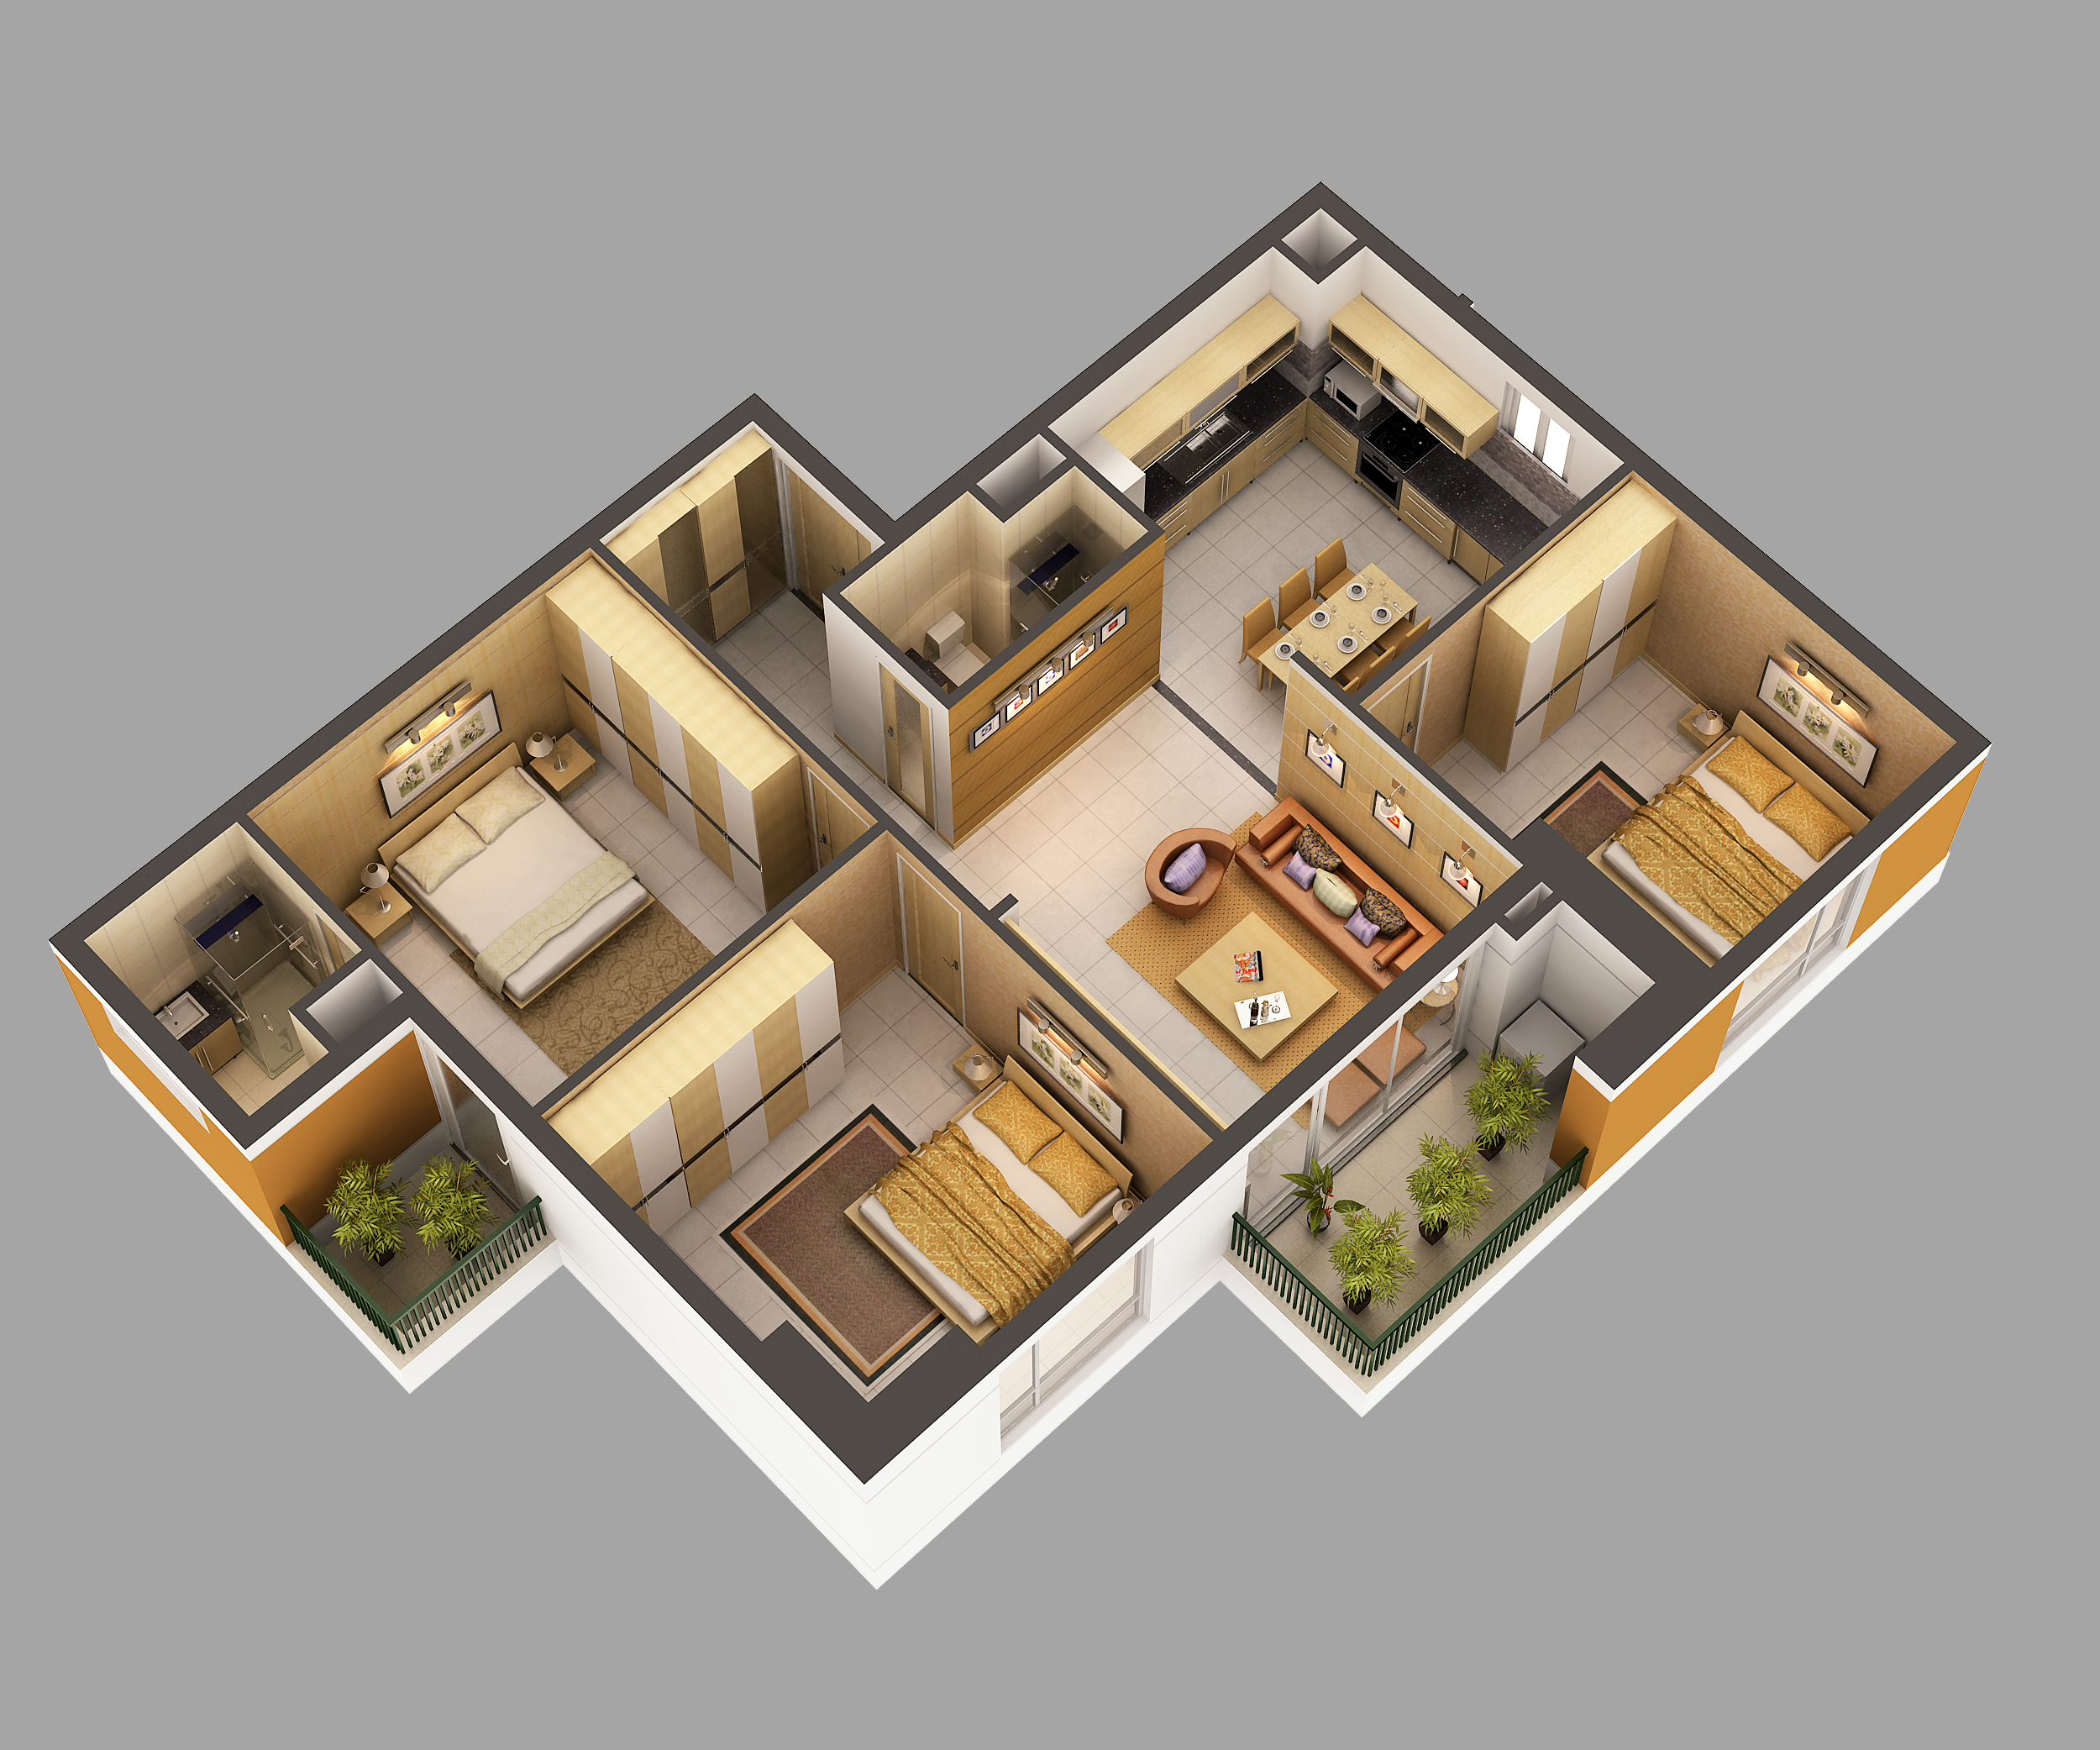 3d model home interior fully furnished 3d model max for House interior designs 3d